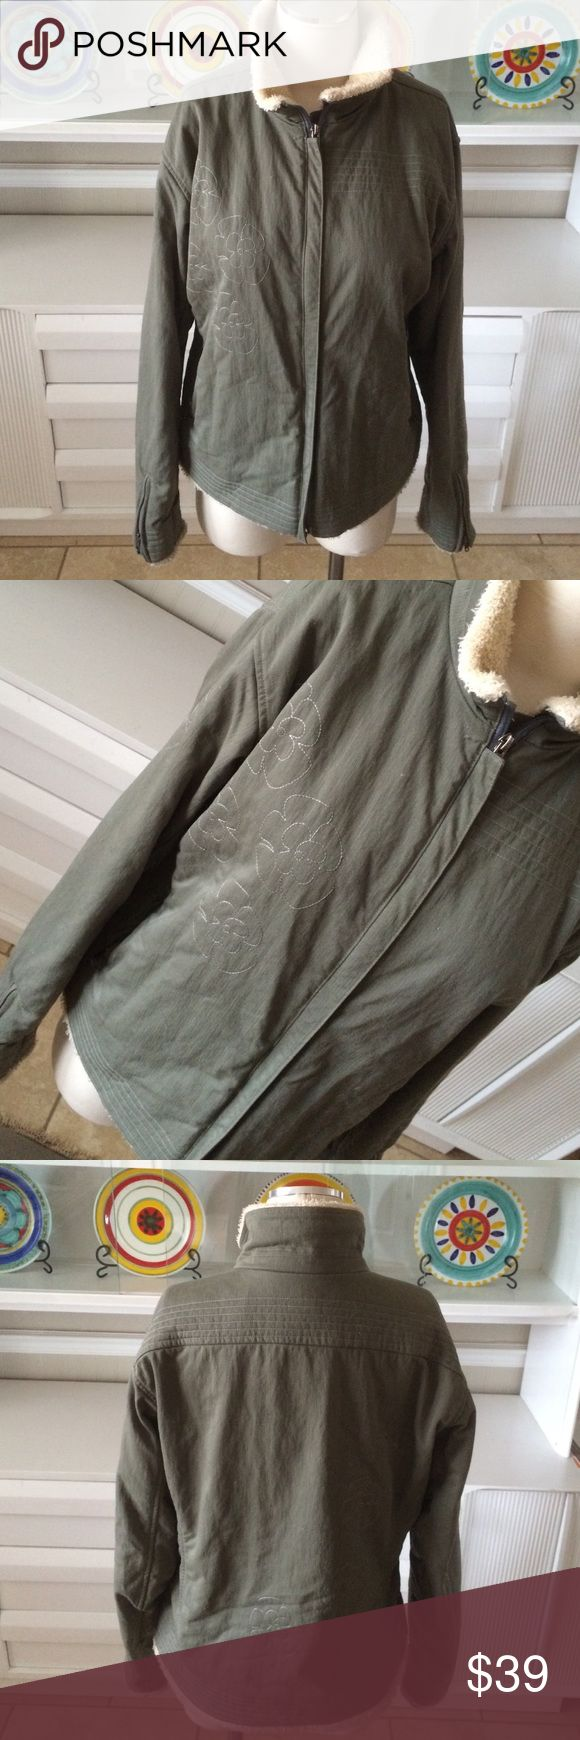 "Mountain Hard Wear olive khaki jacket Good used condition! Embroidered.  Measures 24"" long and 21"" armpit to armpit shearling trim. Mountain Hard Wear Jackets & Coats"